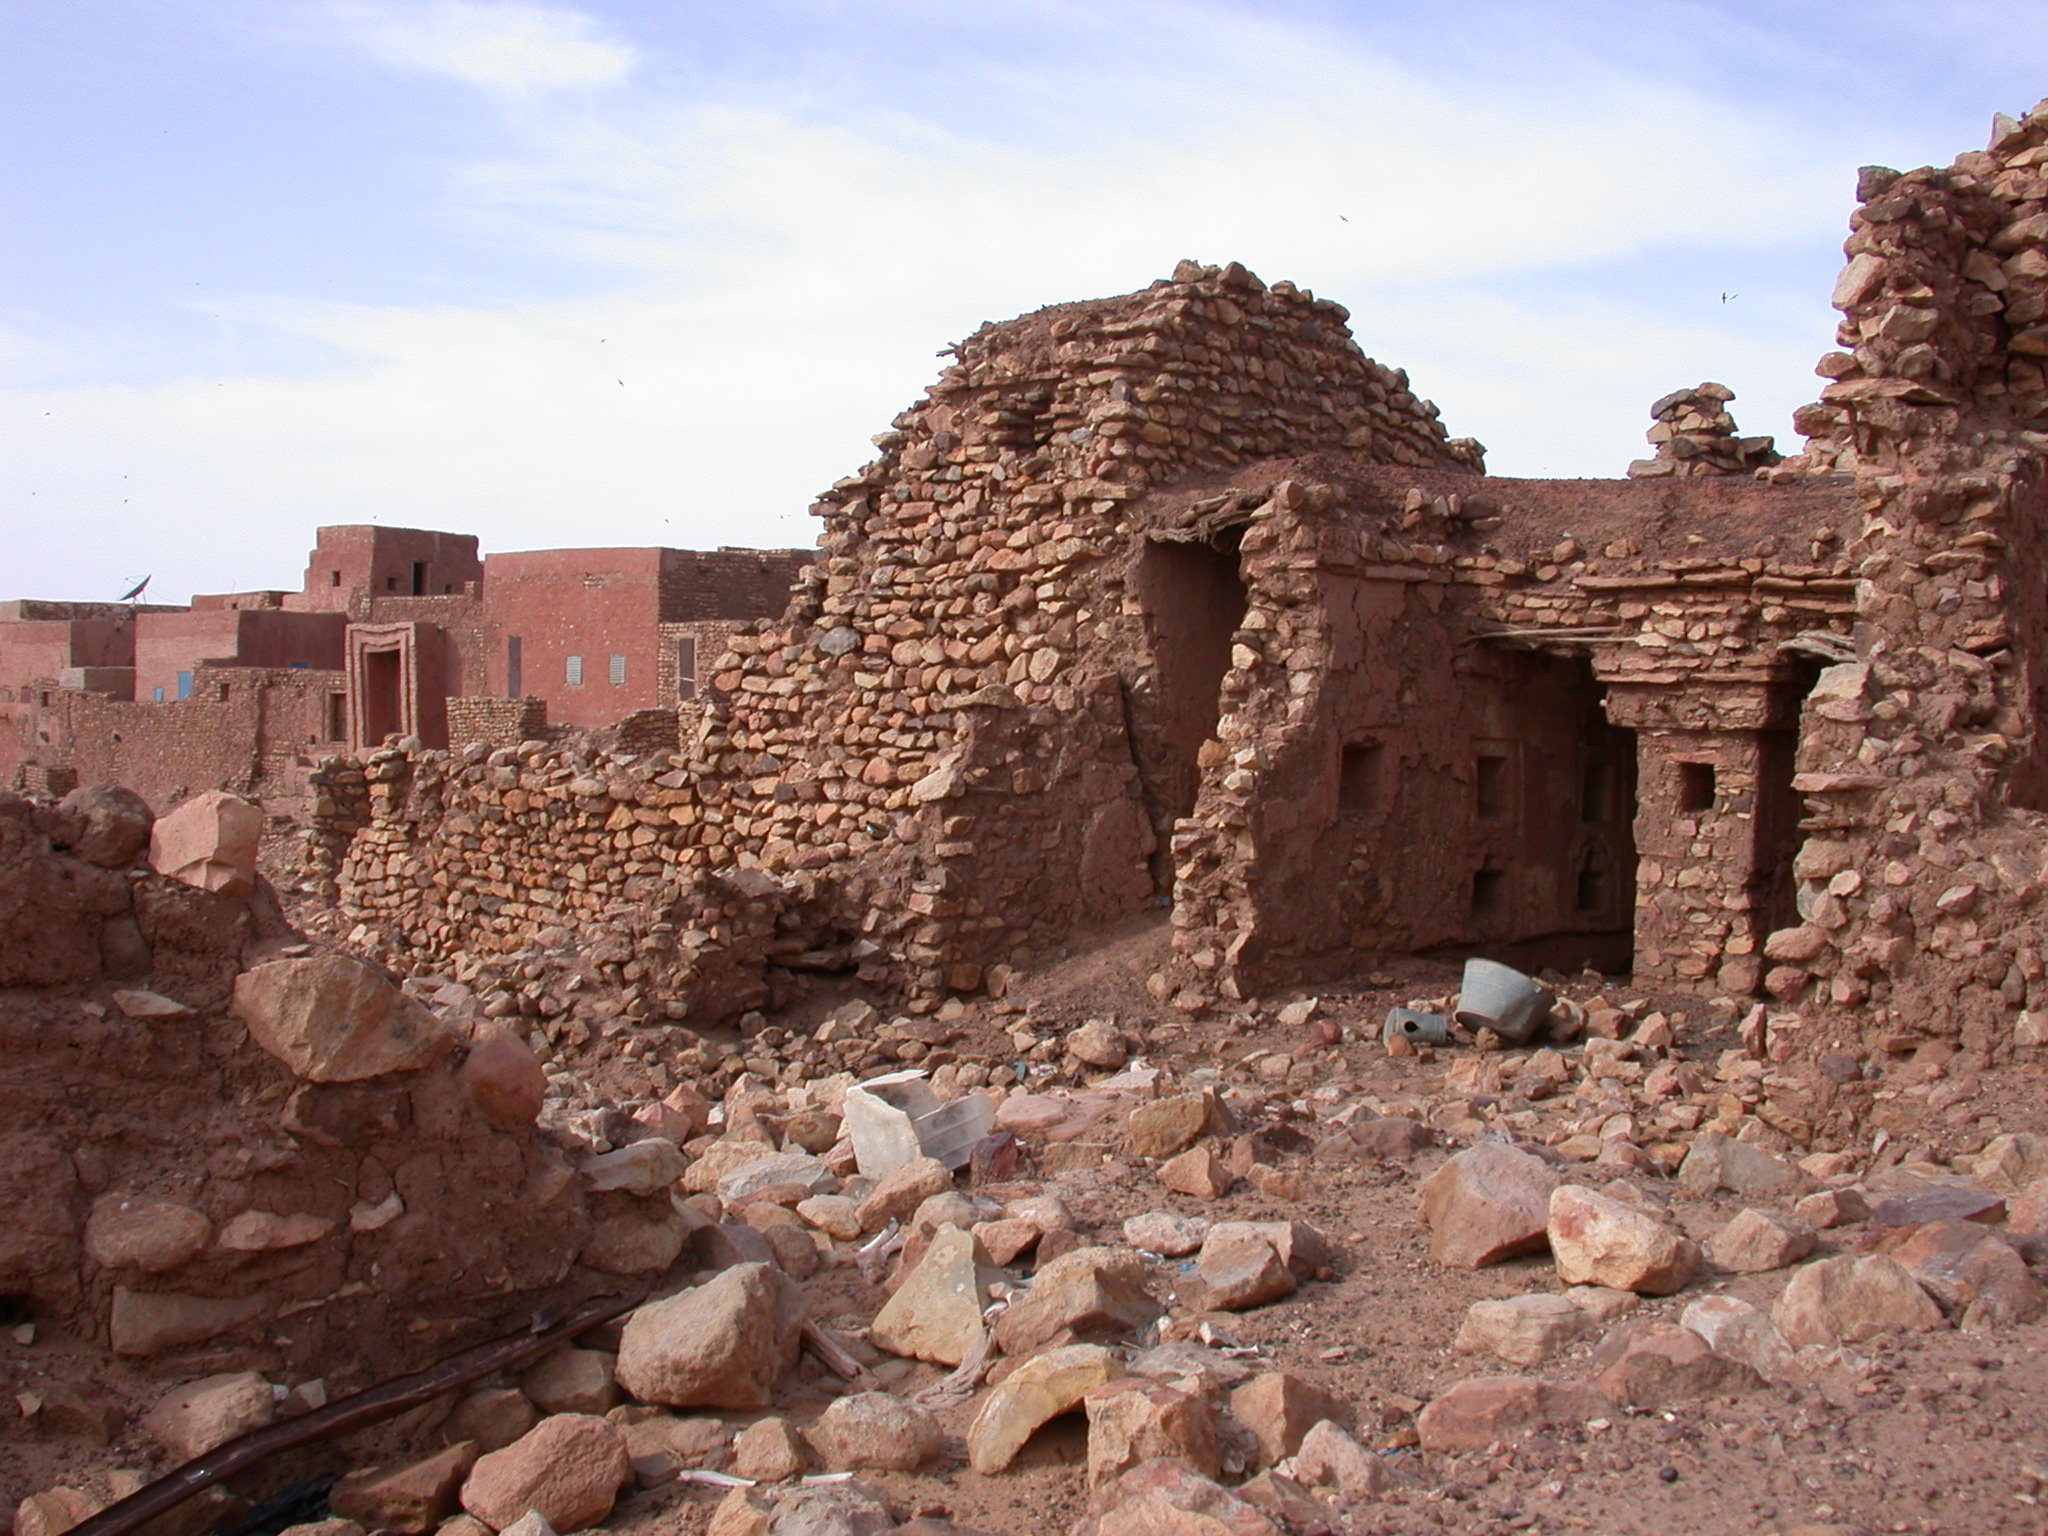 Ruins in Ancient City of Oulata, Mauritania